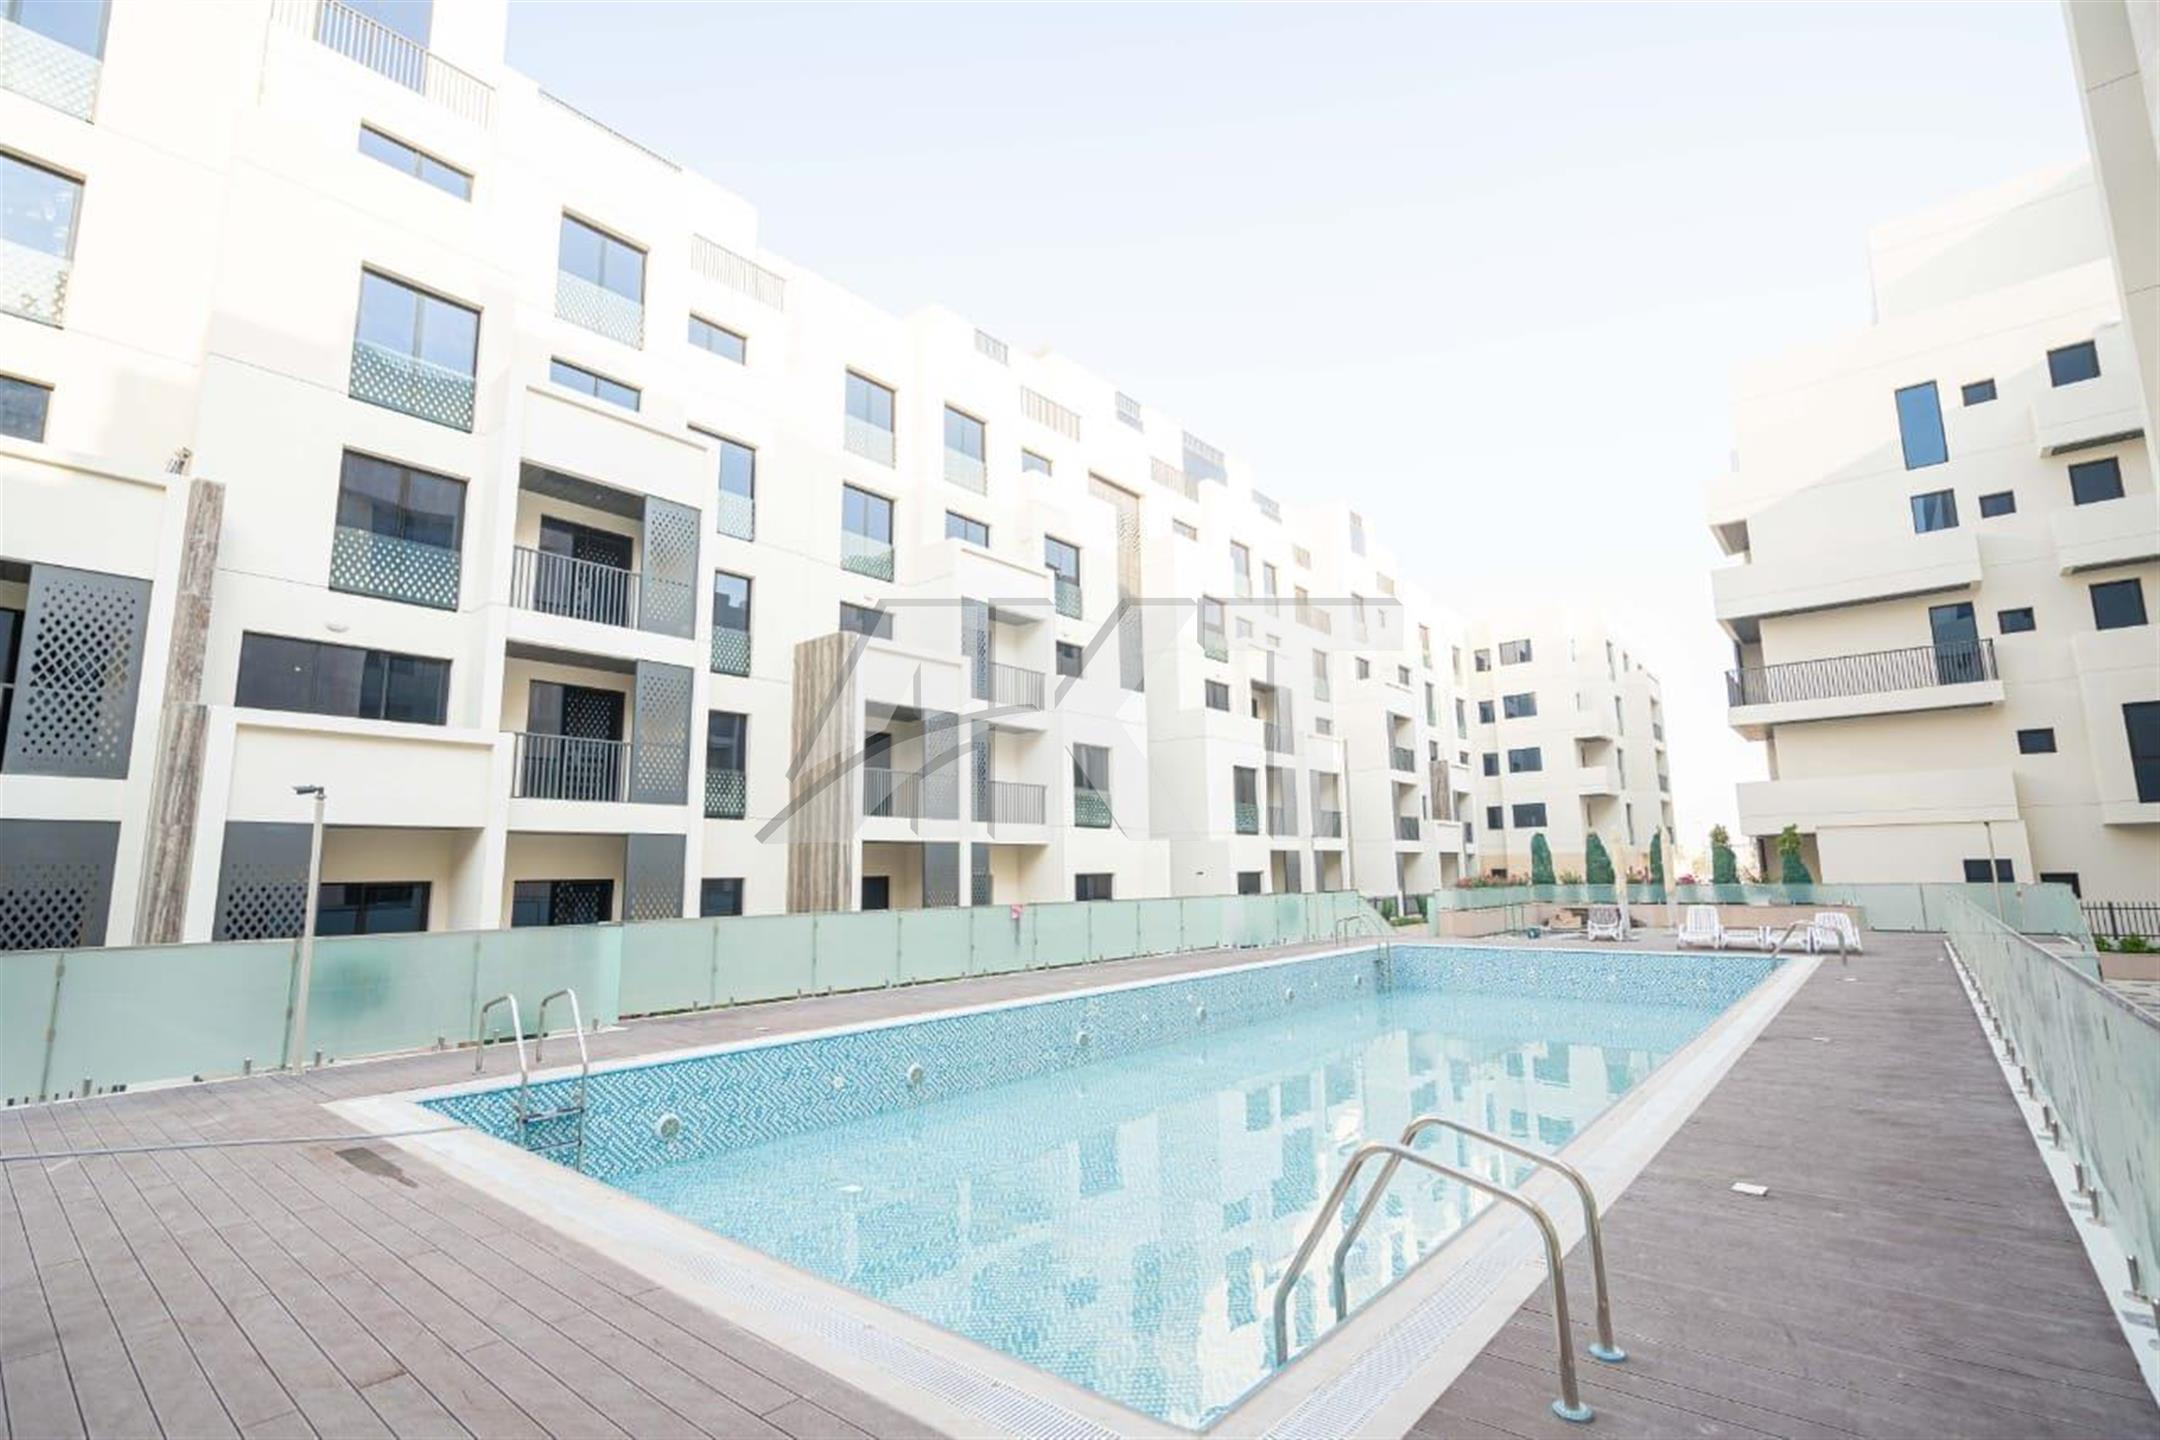 1,2,3 BR APARTMENT MIRDIF HILLS PAY 20 %  AND MOVING